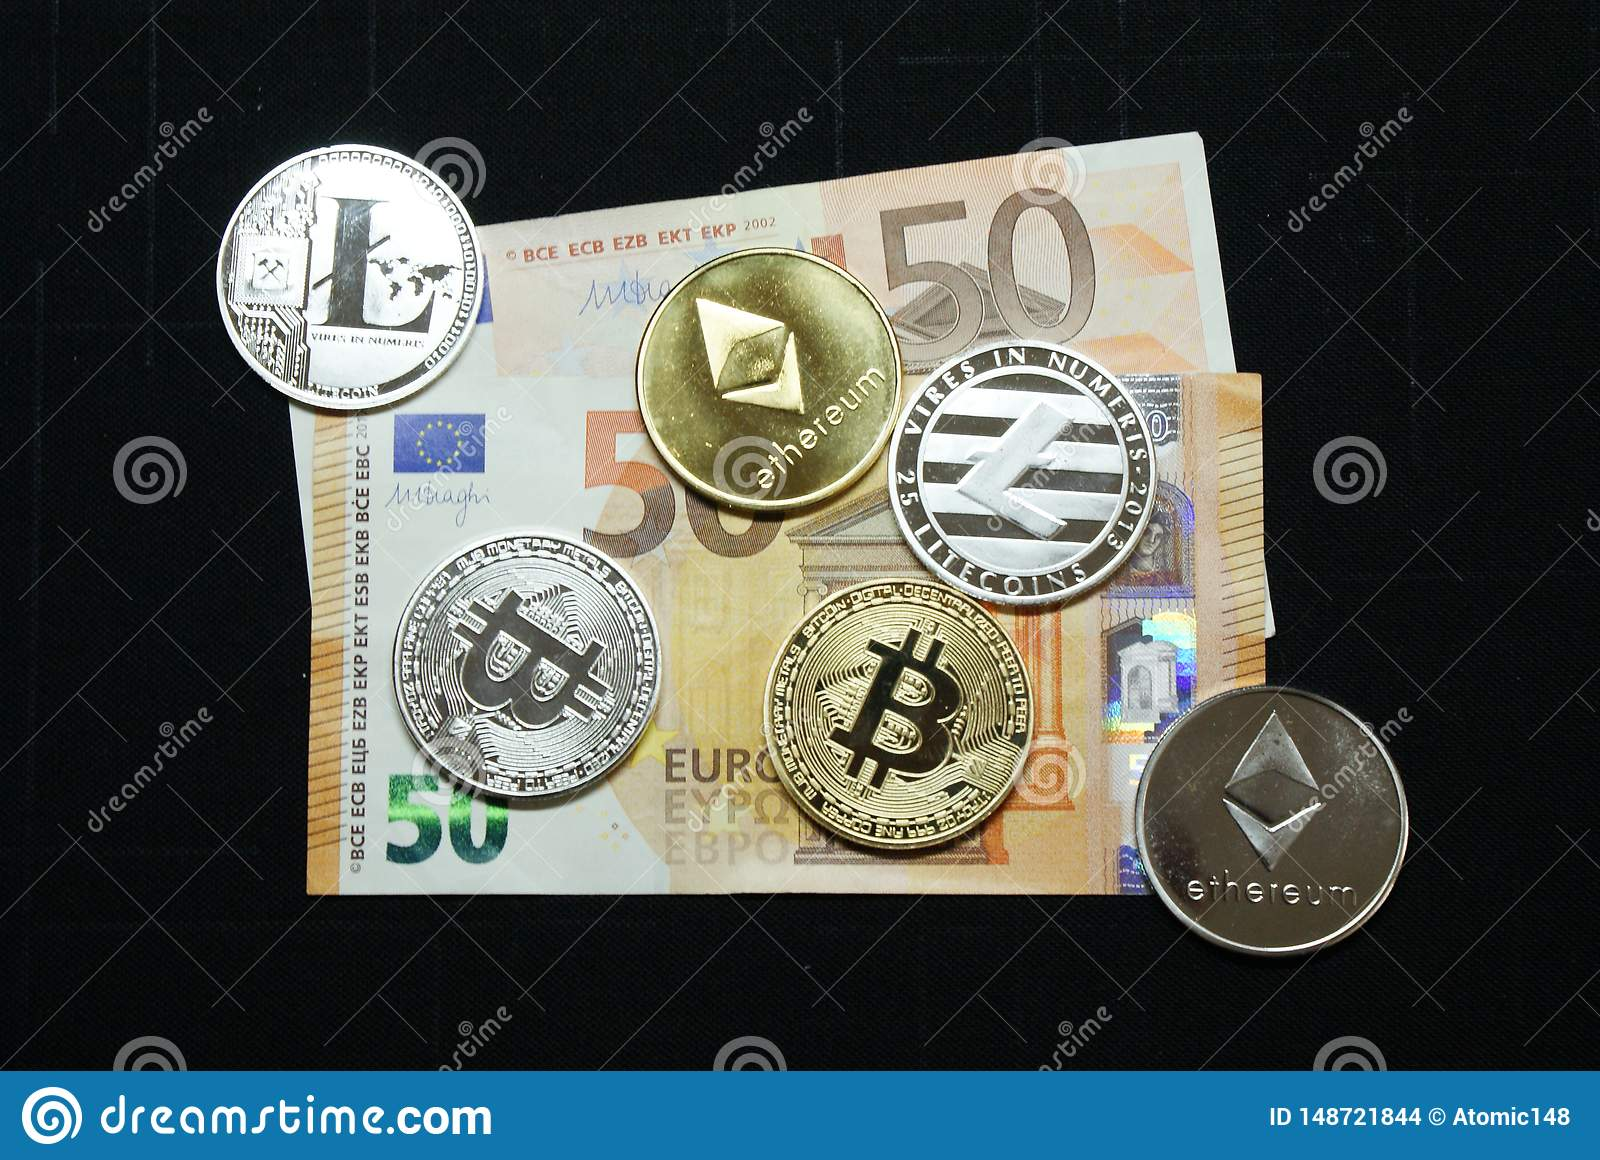 Collection of silver and gold cryptocurrency coins on a 50 euro banknote